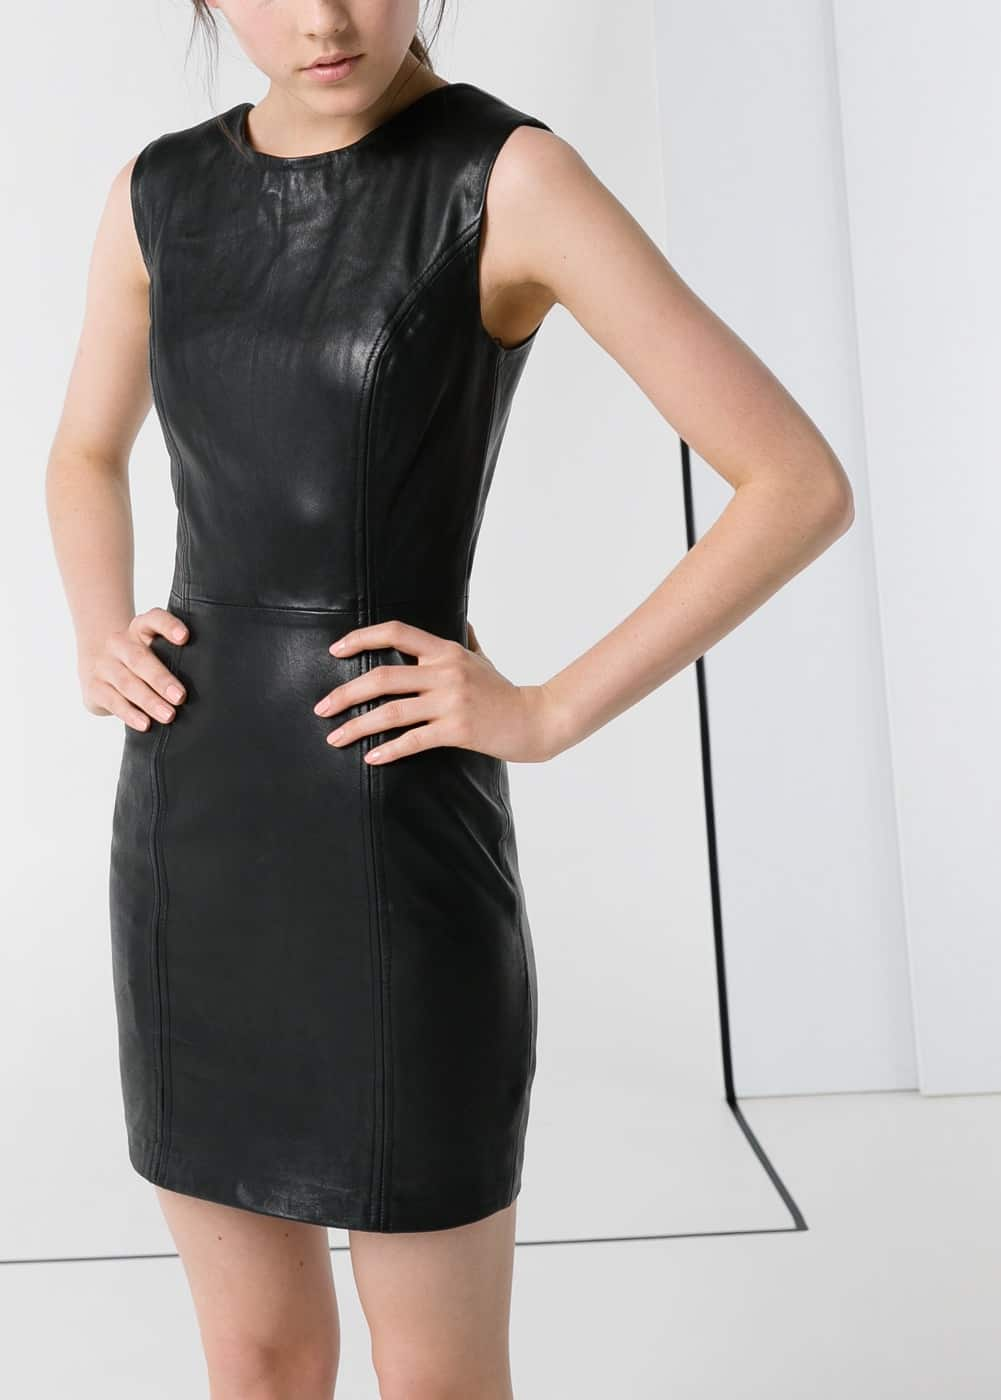 Padded-shoulder leather dress